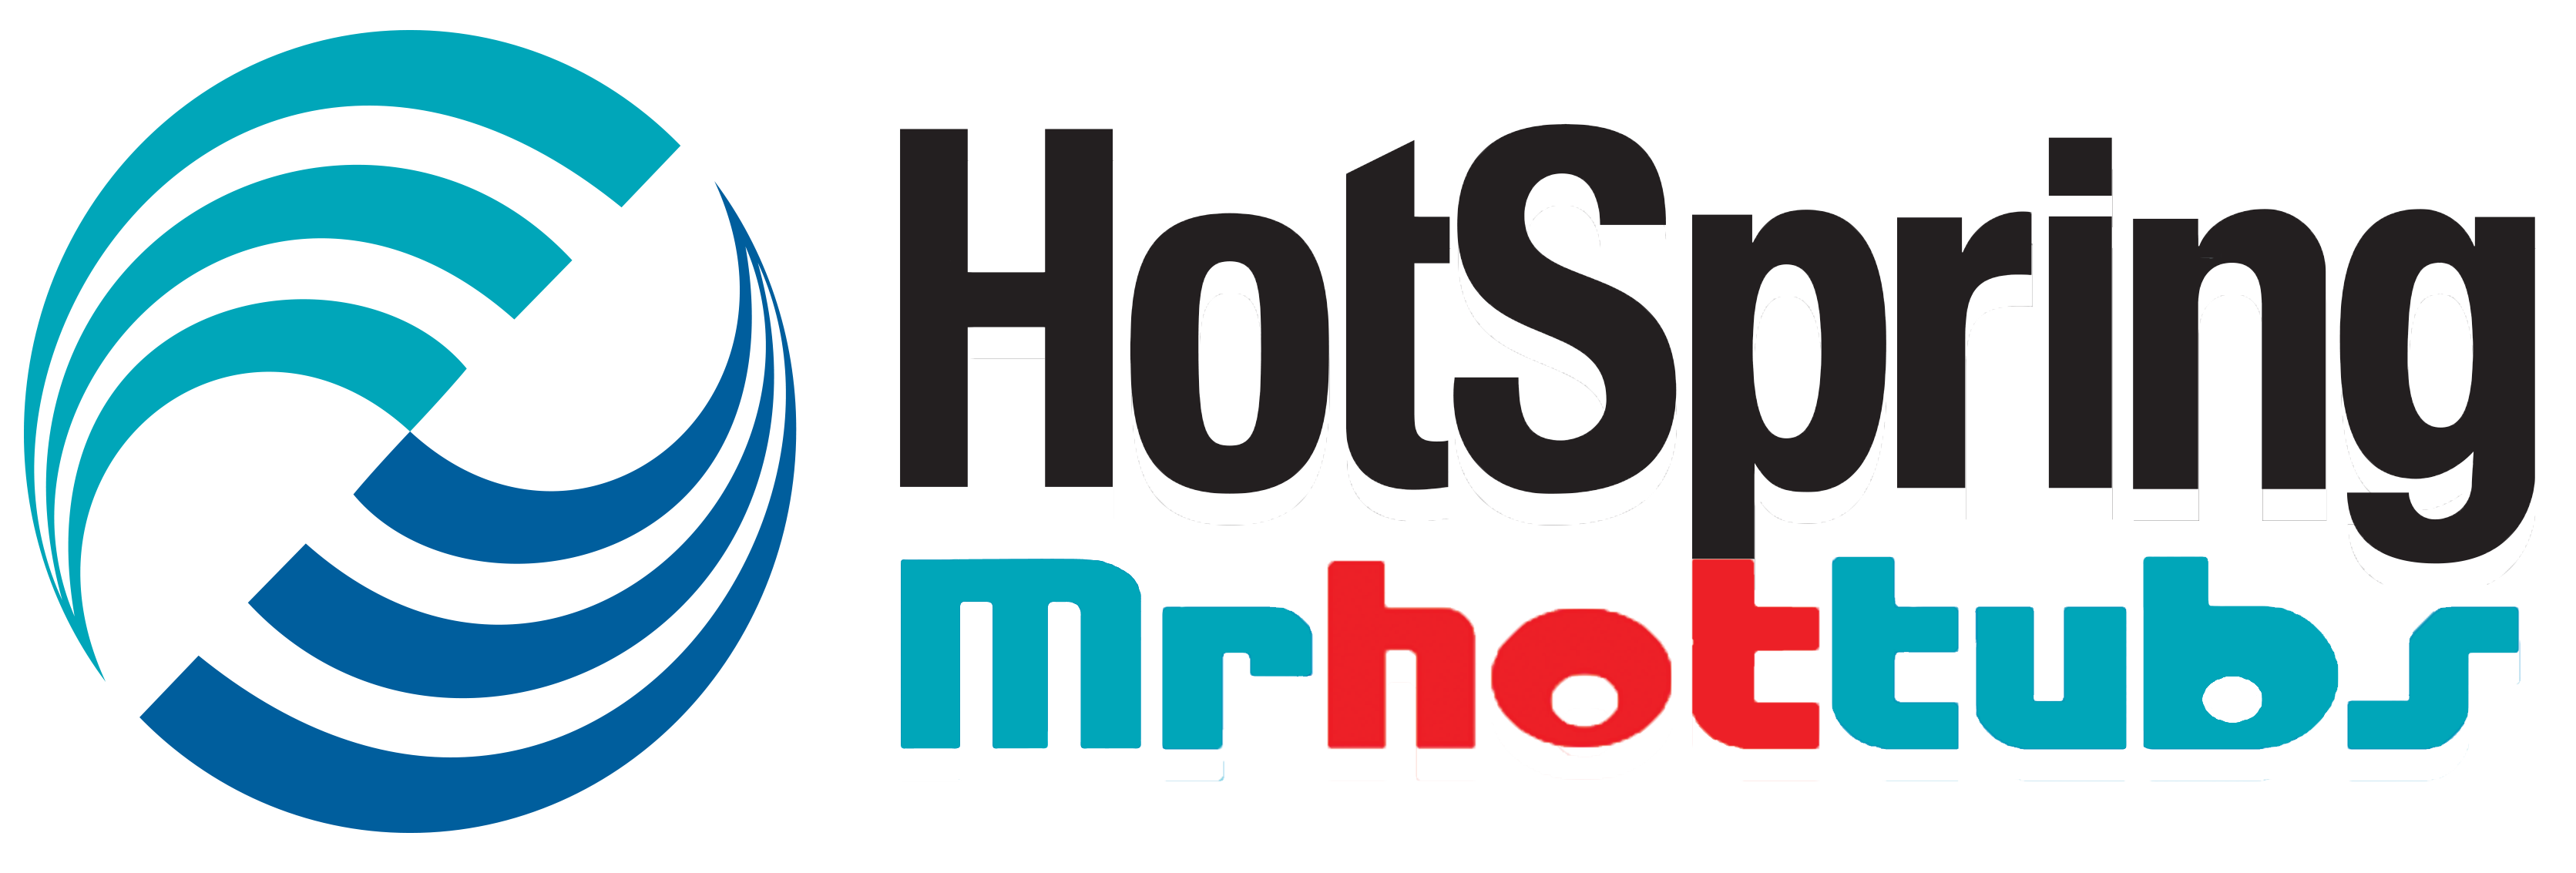 Hot Tubs & Spas By HotSpring | Find Your Local HotSpring Dealer